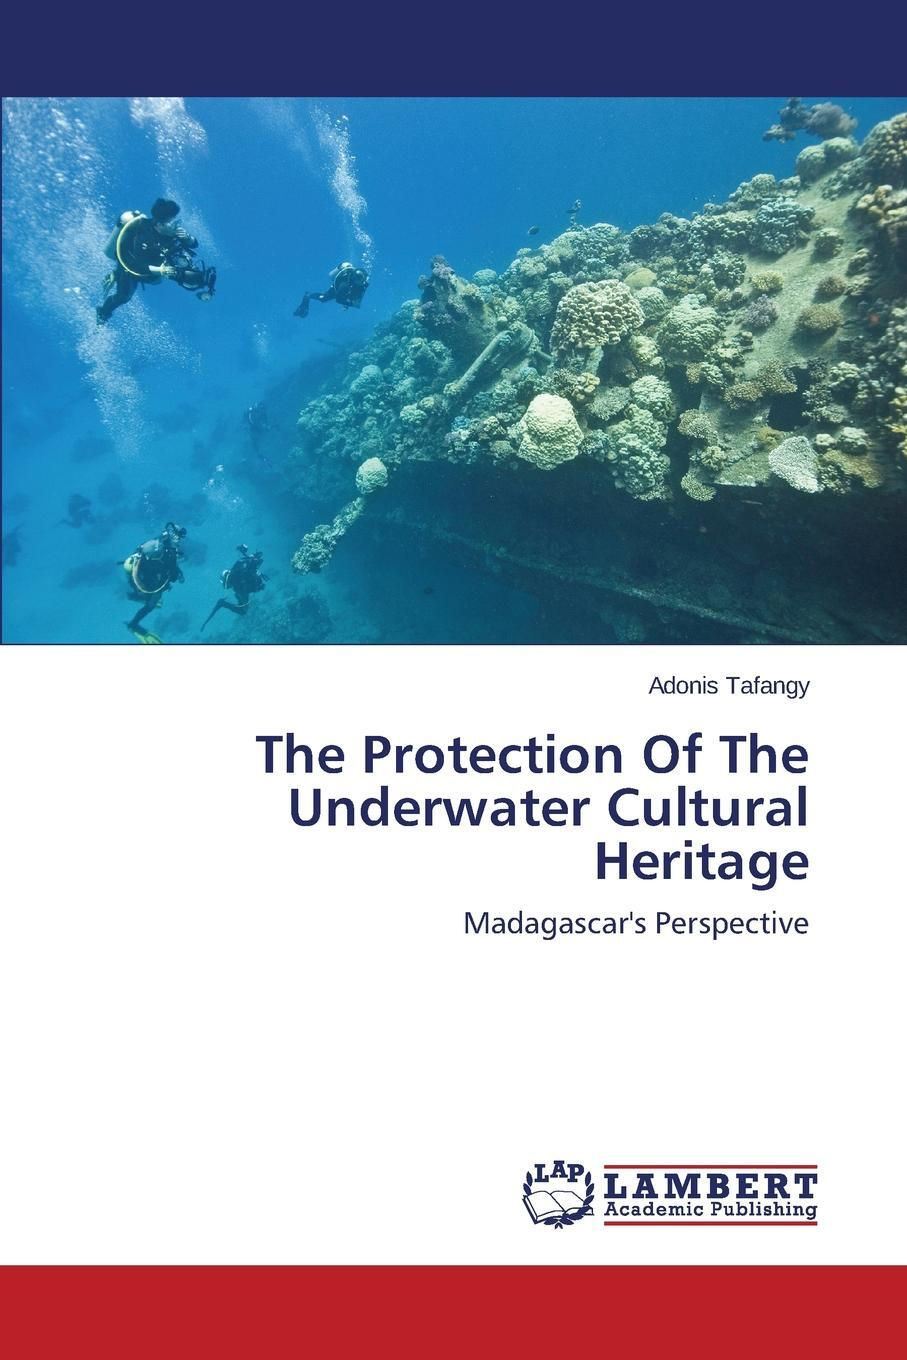 The Protection Of The Underwater Cultural Heritage. Tafangy Adonis